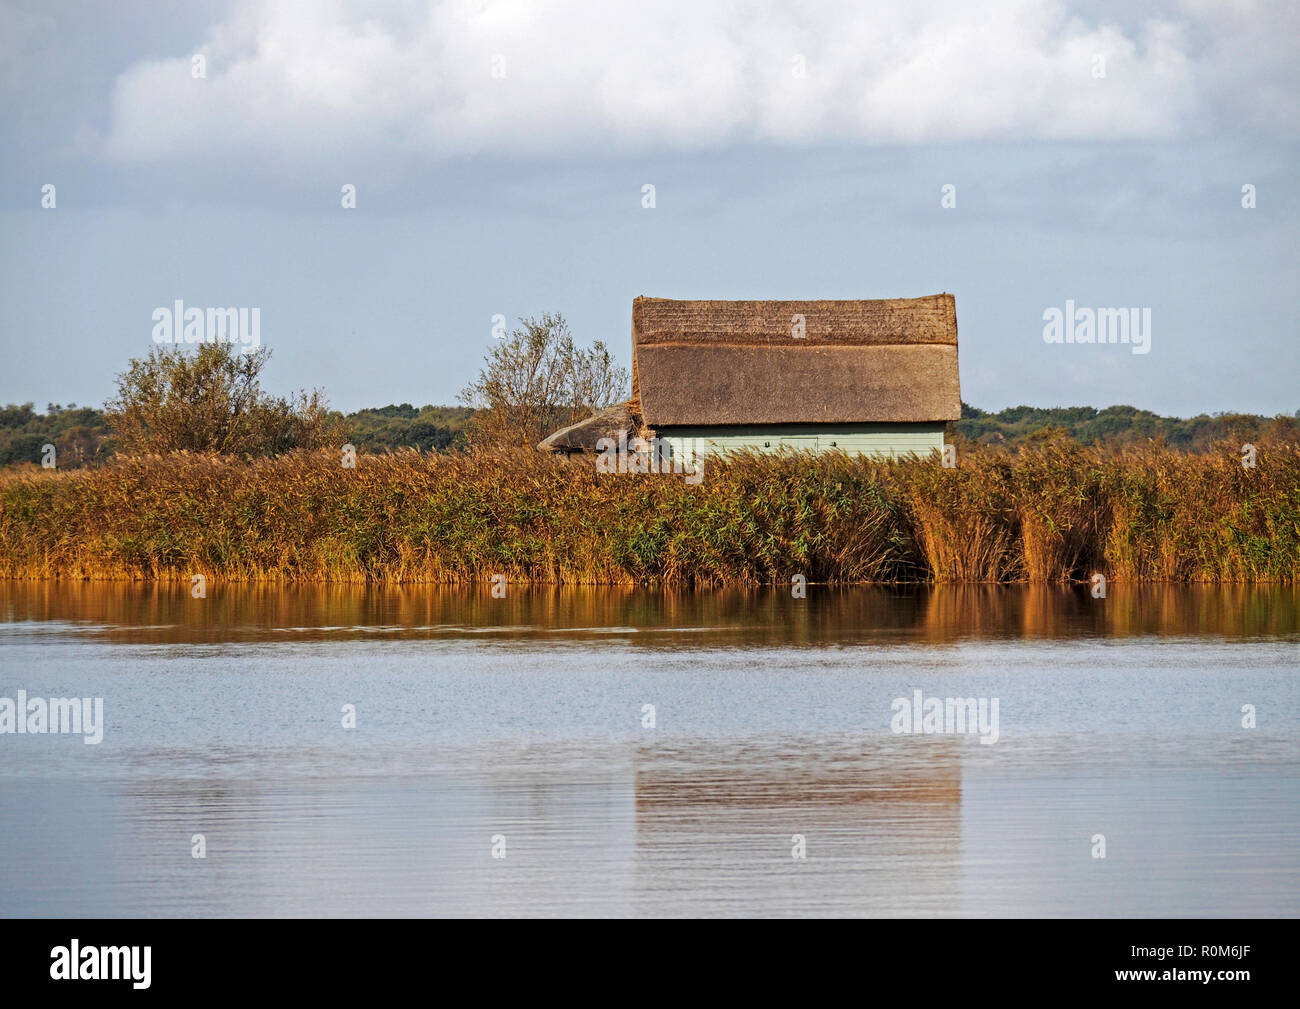 A typical Broadland wooden boathouse with thatched roof in the marshy reed beds at Horsey Mere, one of the famed Norfolk Broads seen in autumn sunshin. Stock Photo